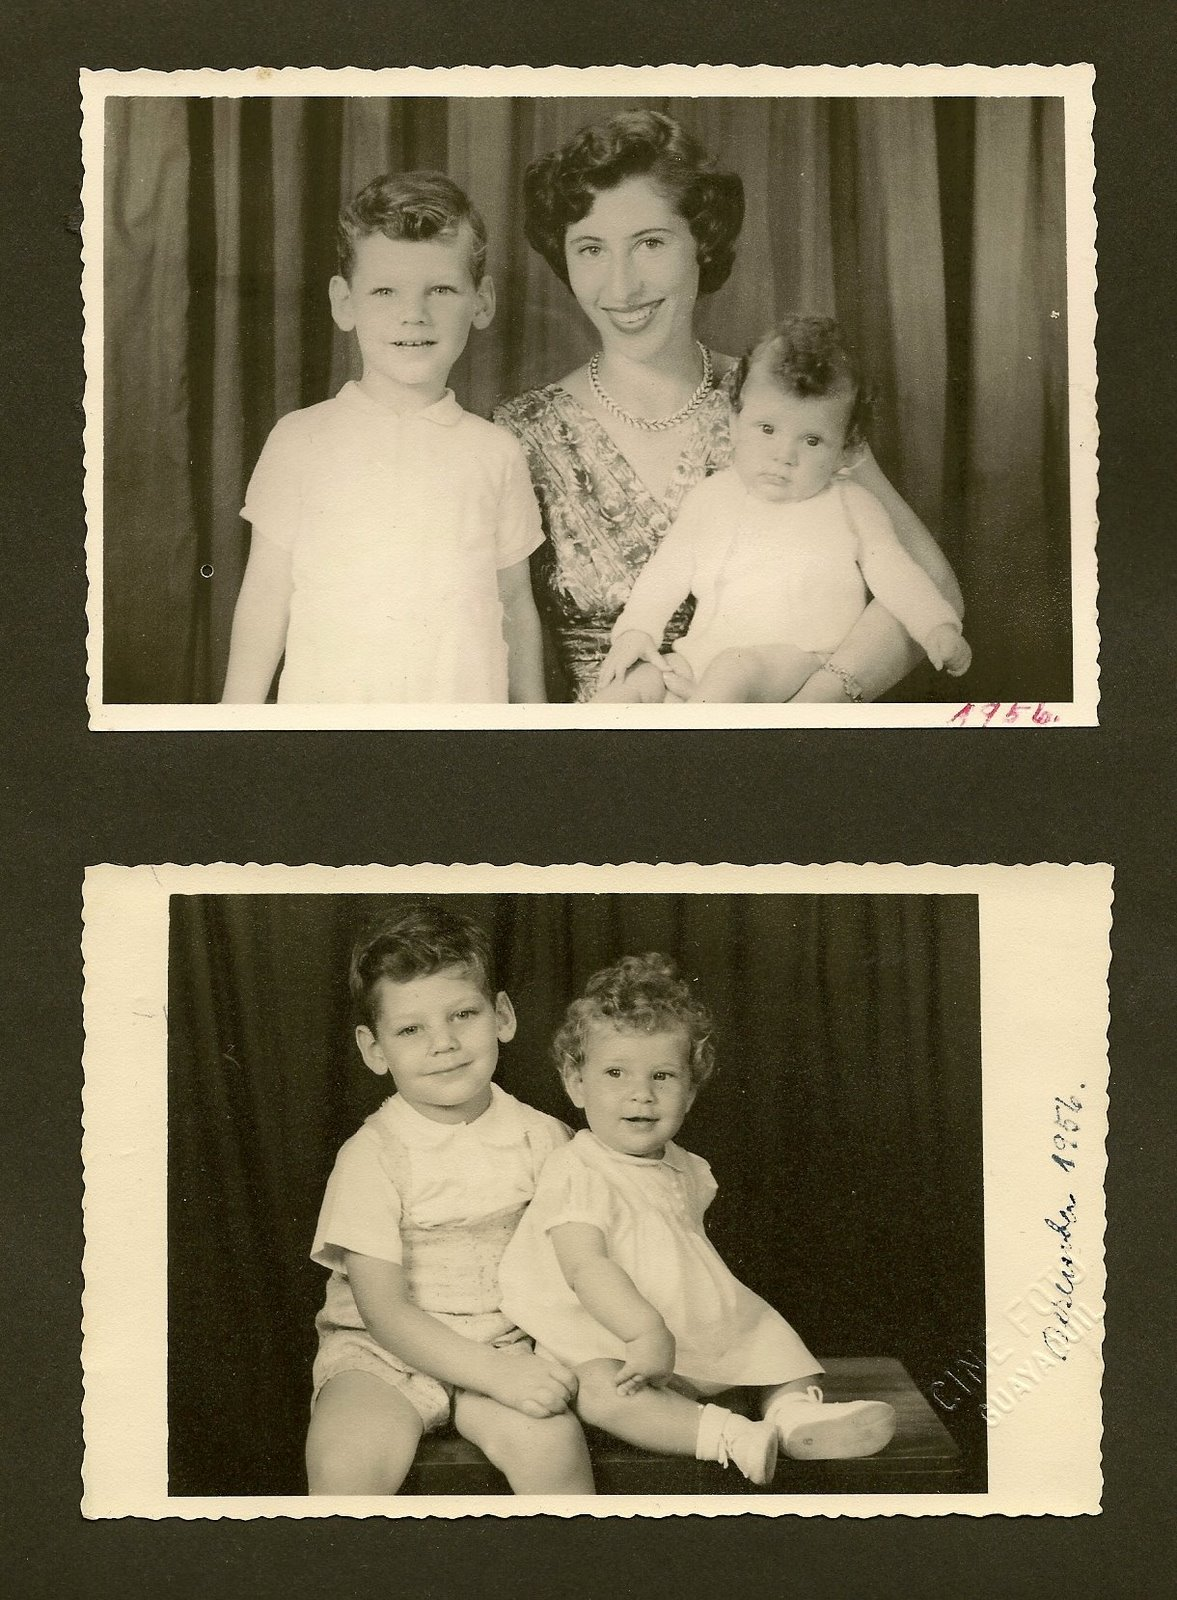 Edith Koppel (nee Wellisch) and her children Tom and Jenany --- 1956, Guayaquil